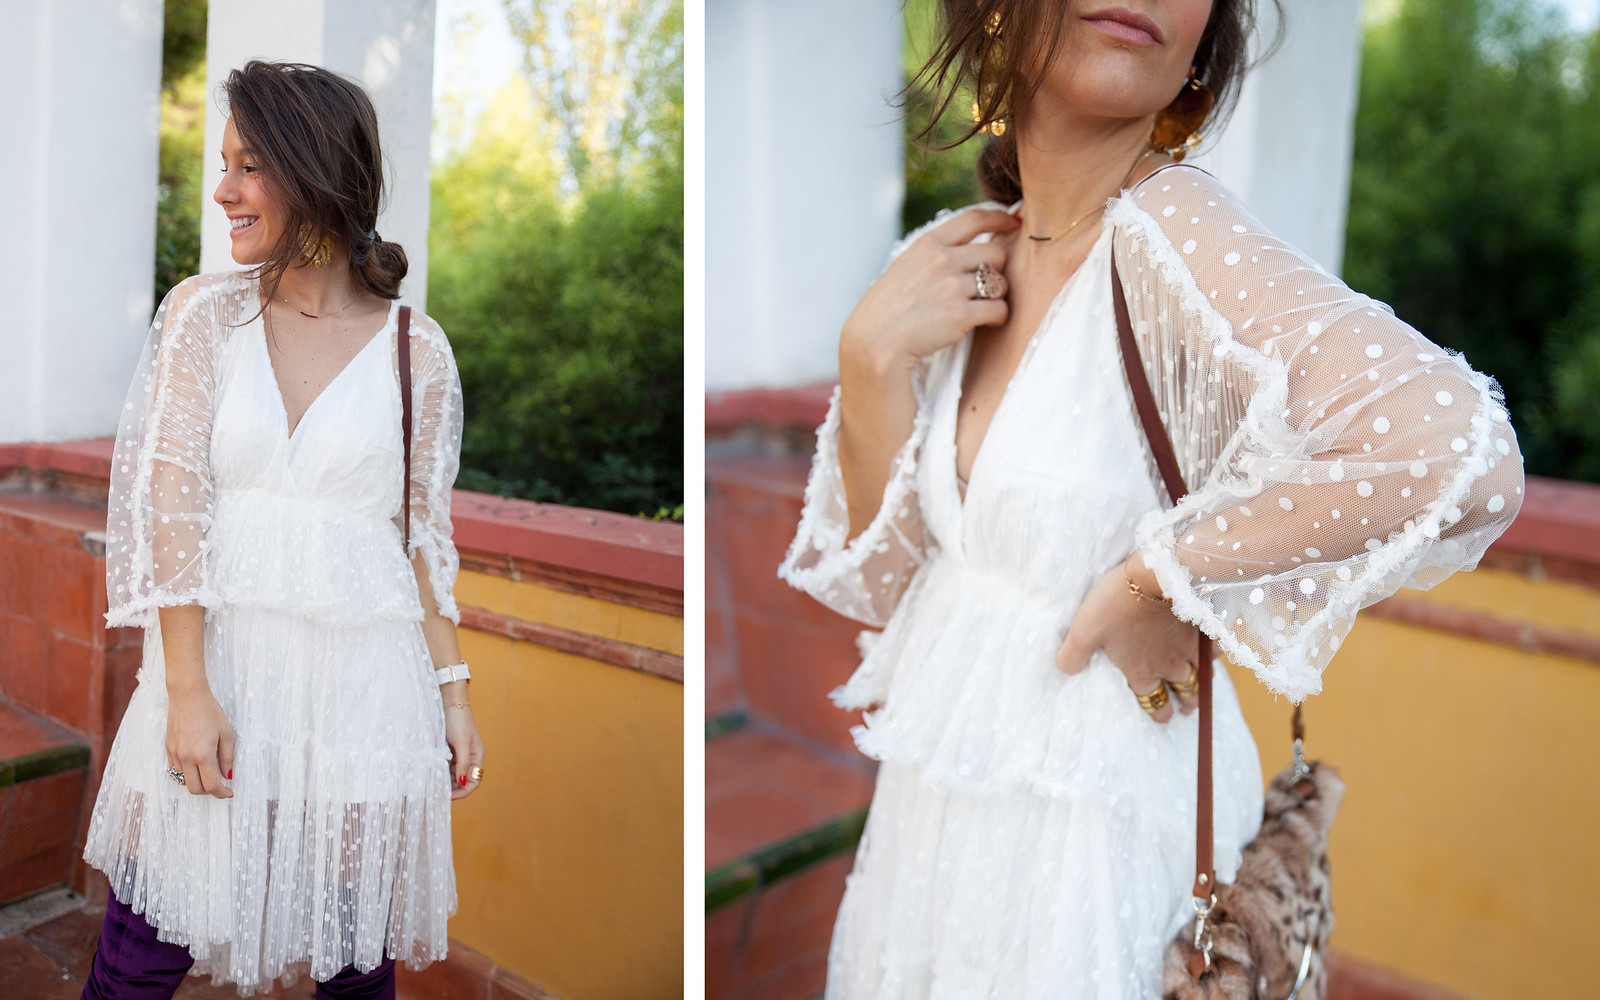 04_DANITY_BOHO_WHITE_DRESS_THEGUESTGIRL_AMBASSADOR_PARTY_DRESS_VESTIDOS_FIESTA_NAVIDADES_TENDENCIA